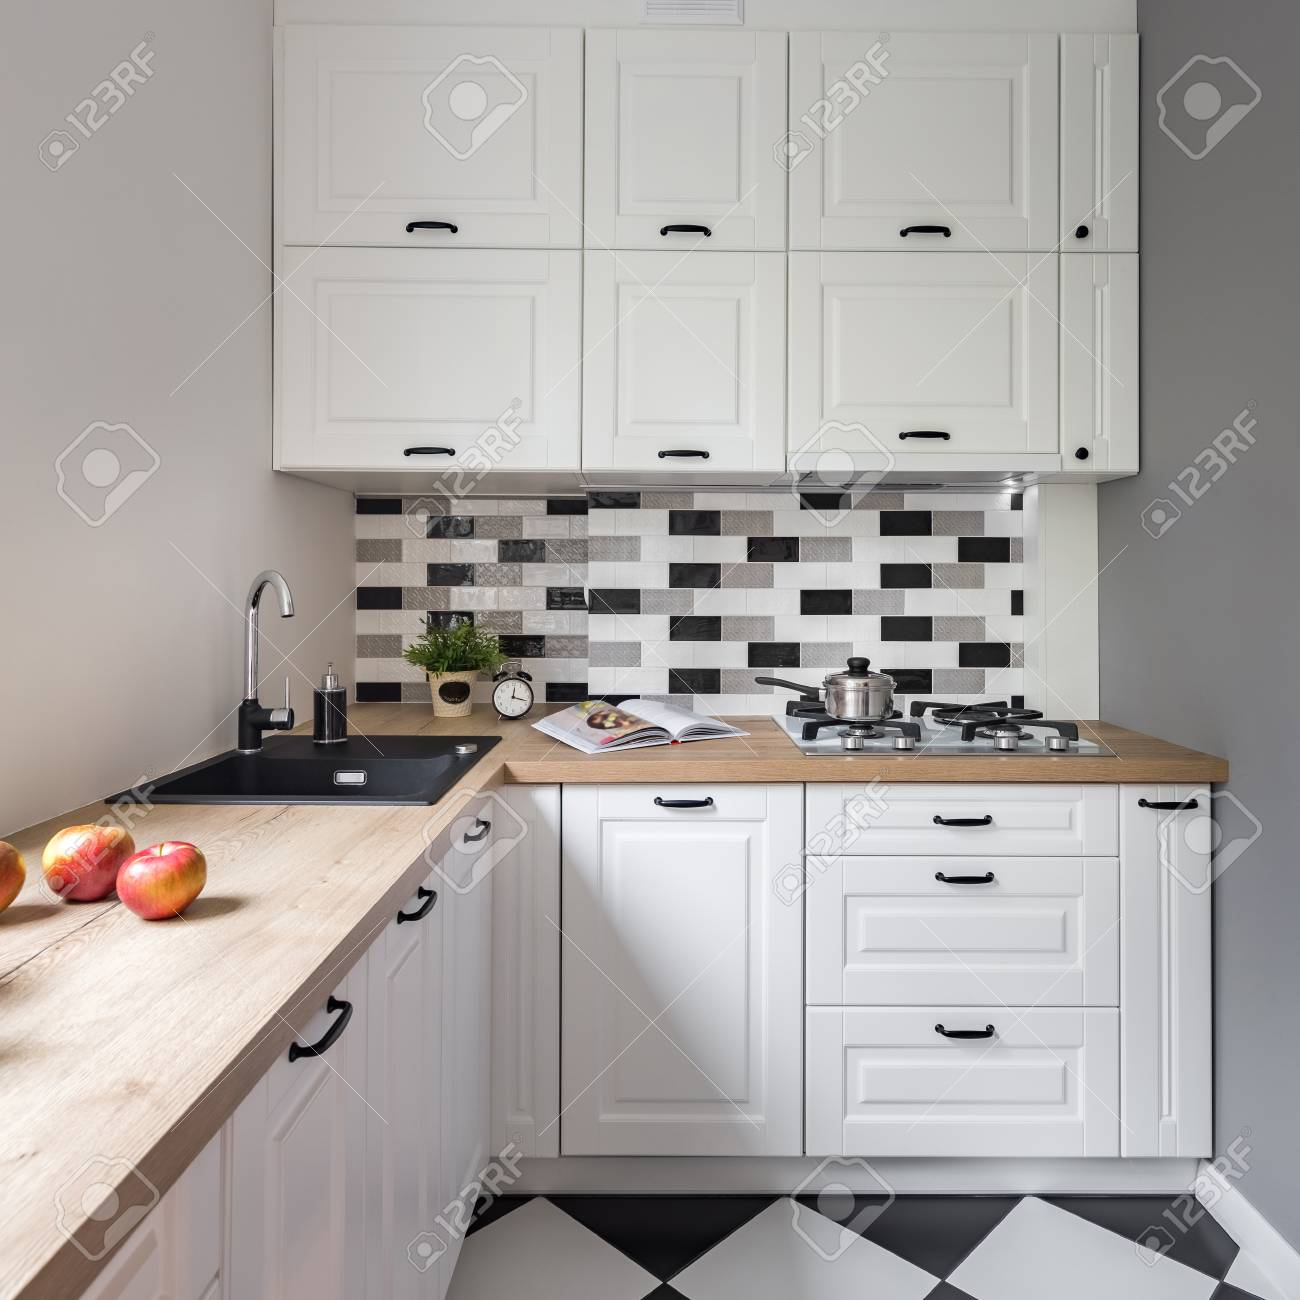 Small Kitchen With Classic White Furniture And Modern Tiles Stock Photo Picture And Royalty Free Image Image 93738729